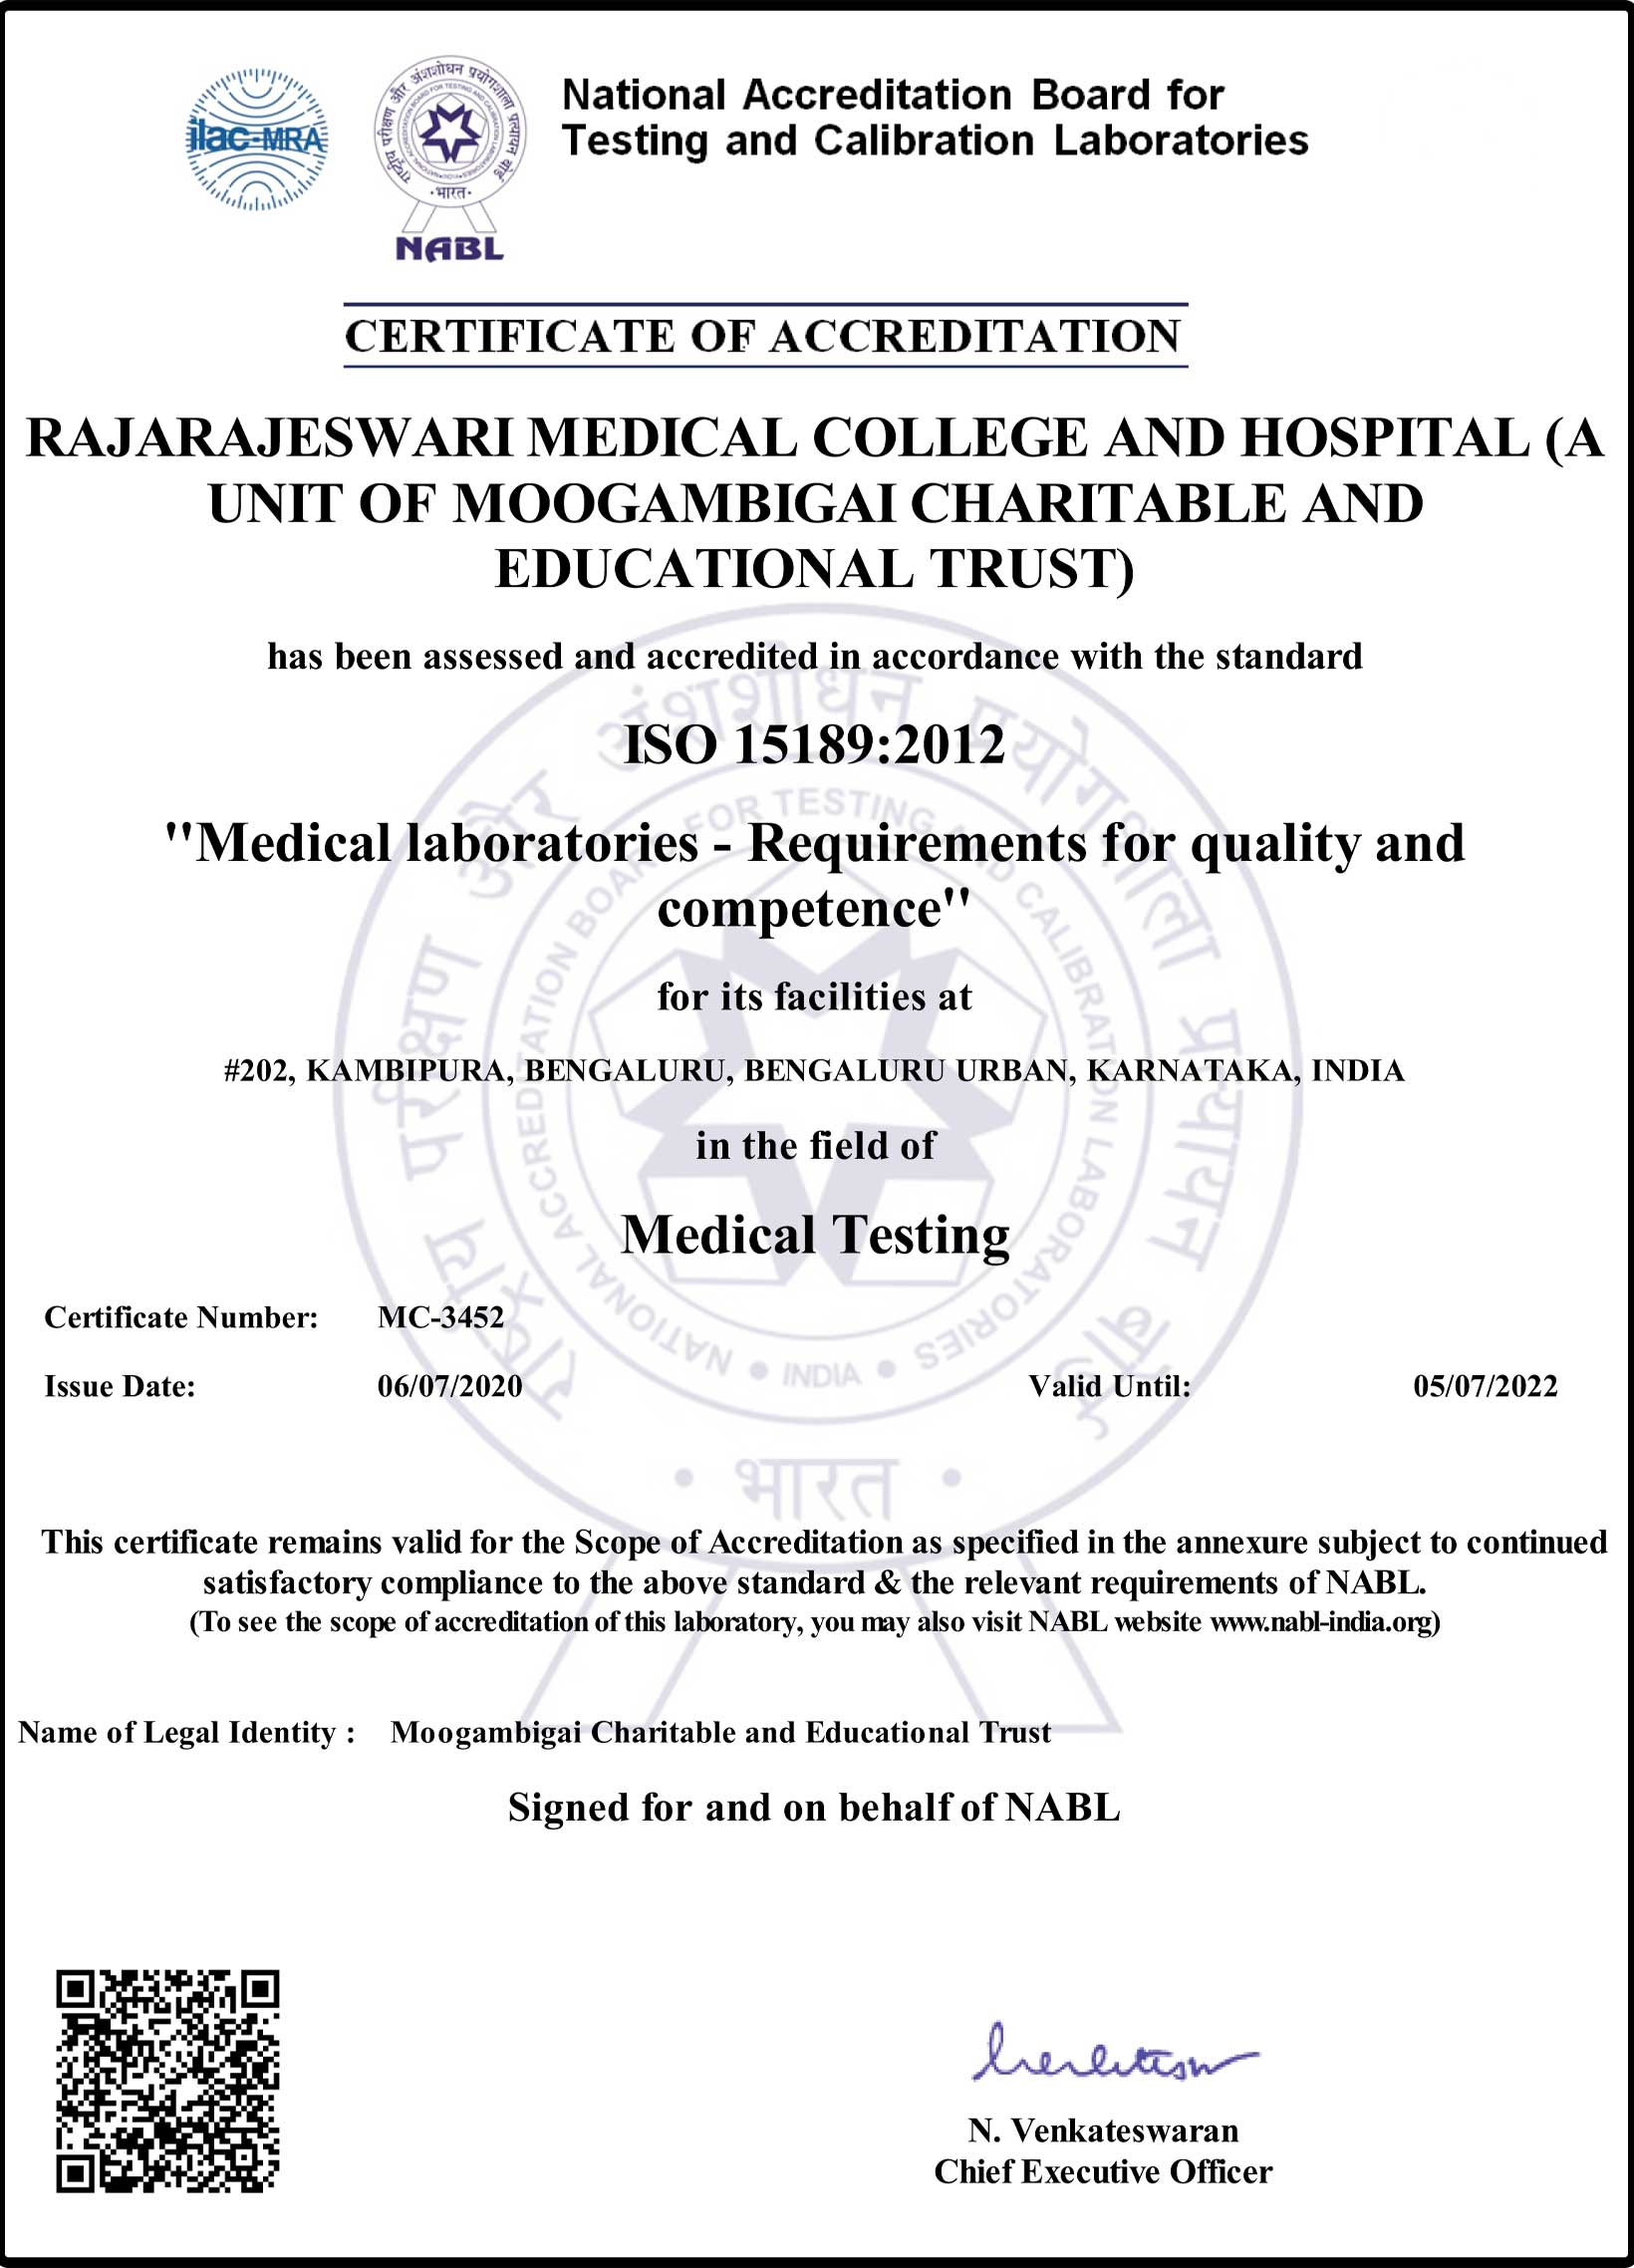 NABL-Certificate-RRMCH